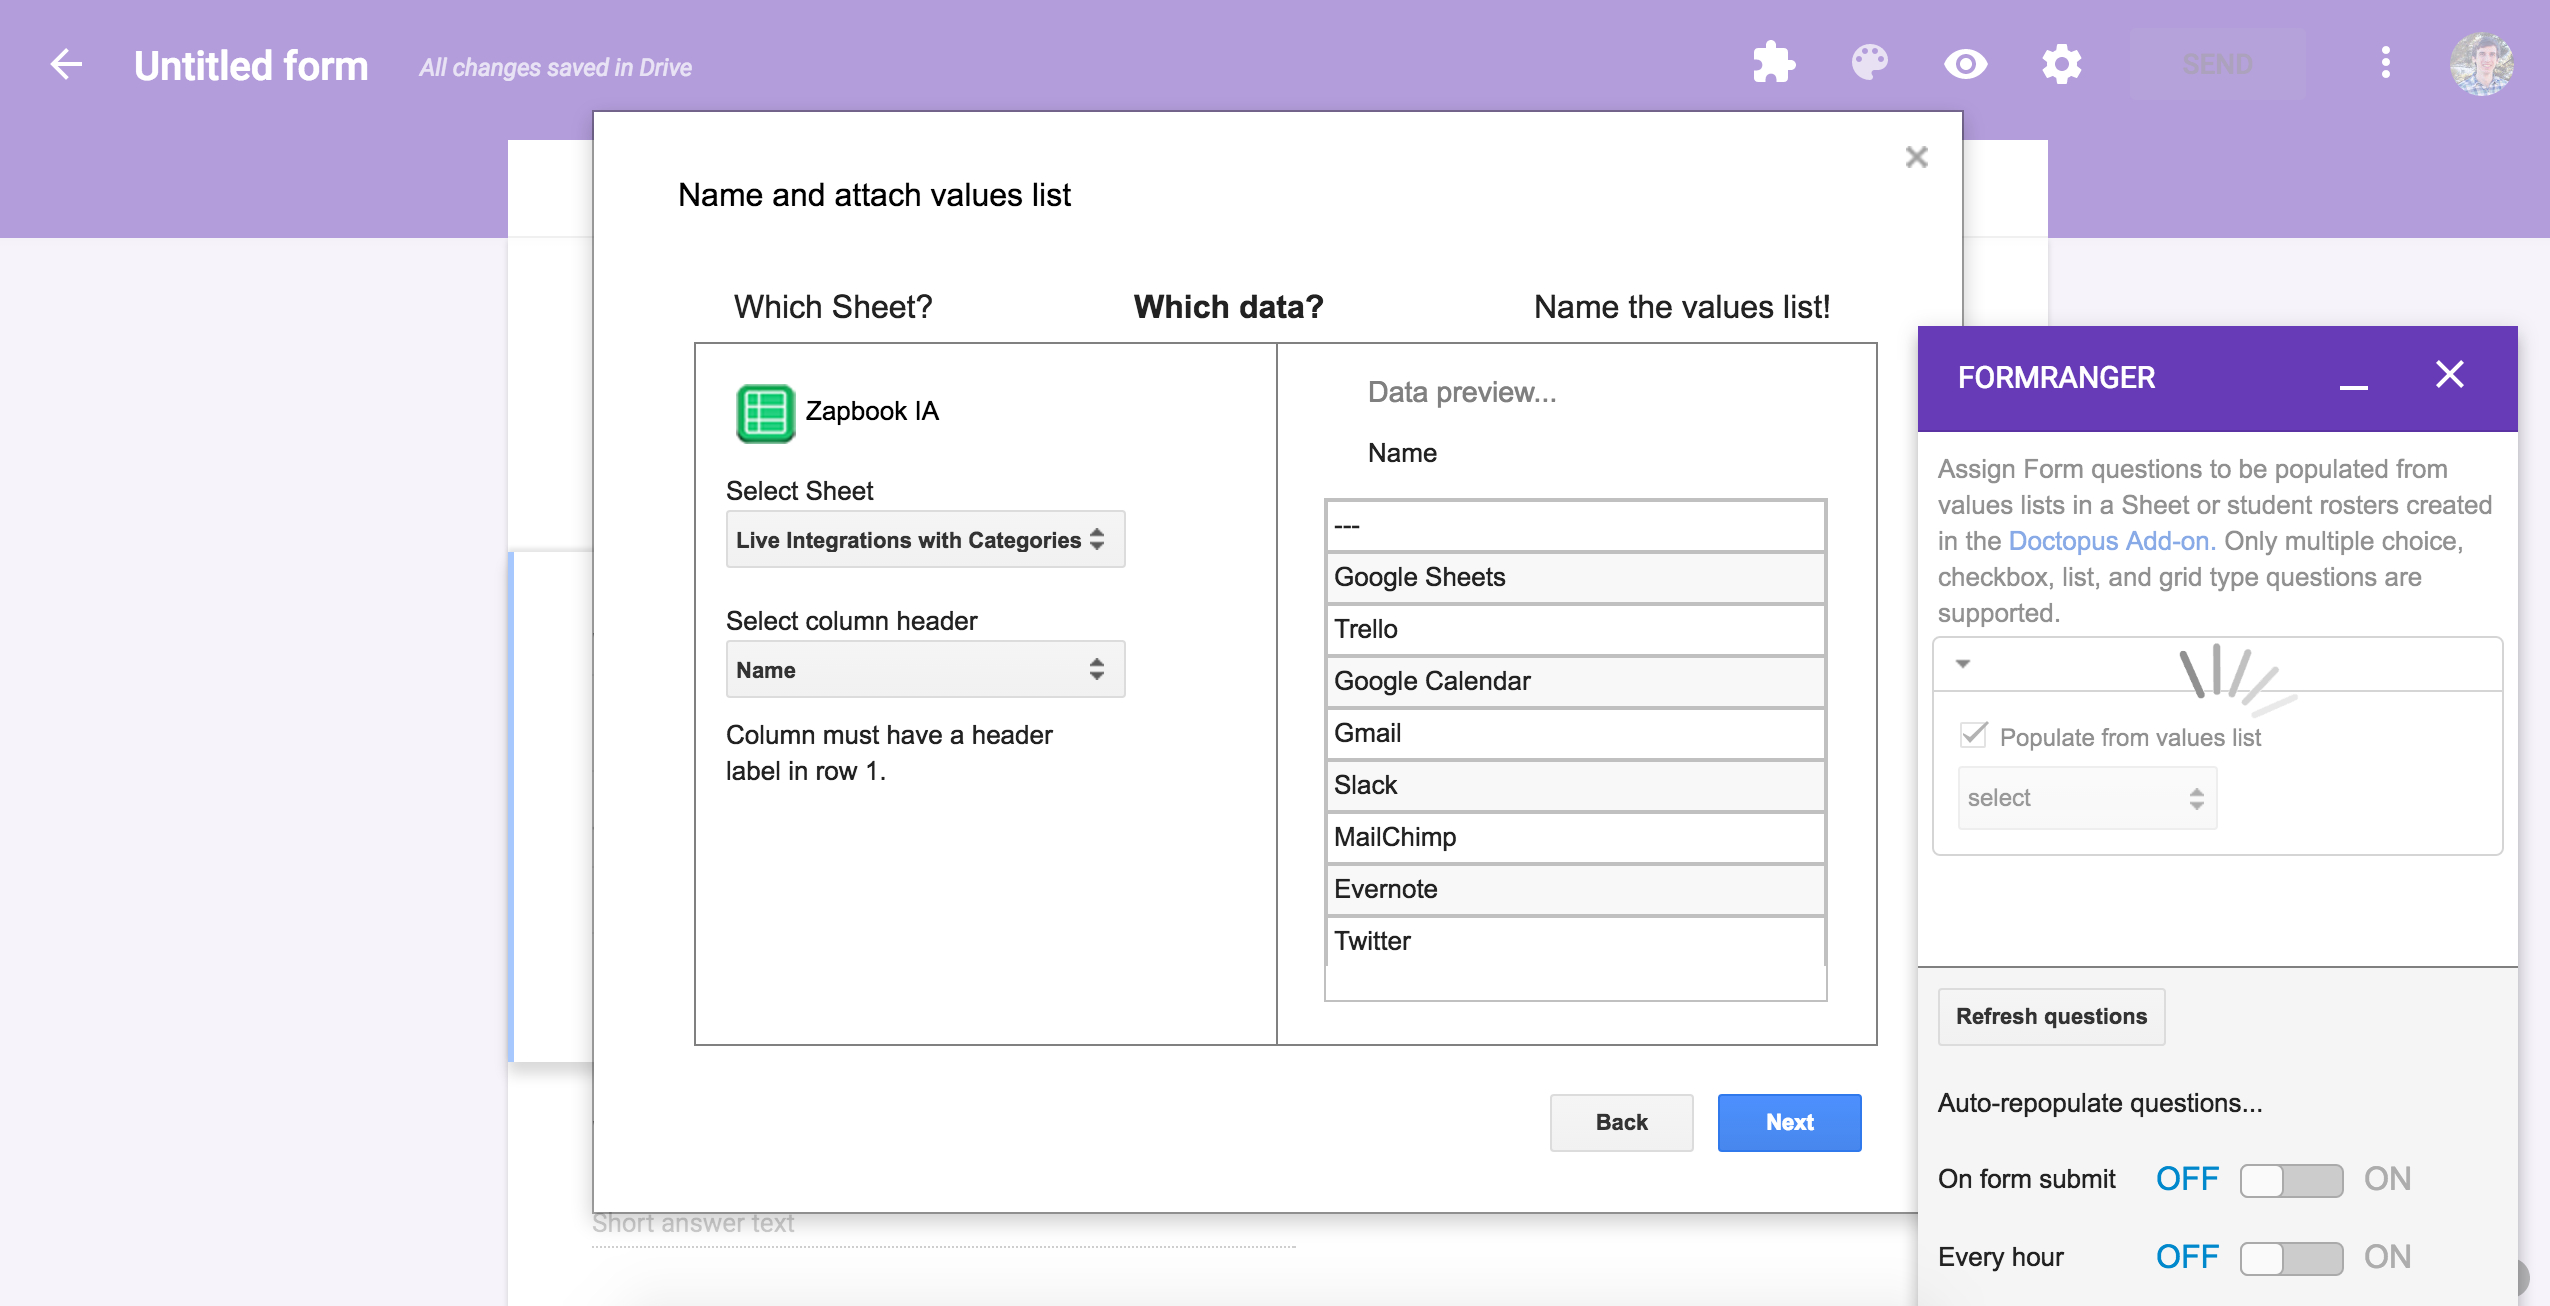 Forms Google Com Spreadsheet With Google Forms Guide: Everything You Need To Make Great Forms For Free